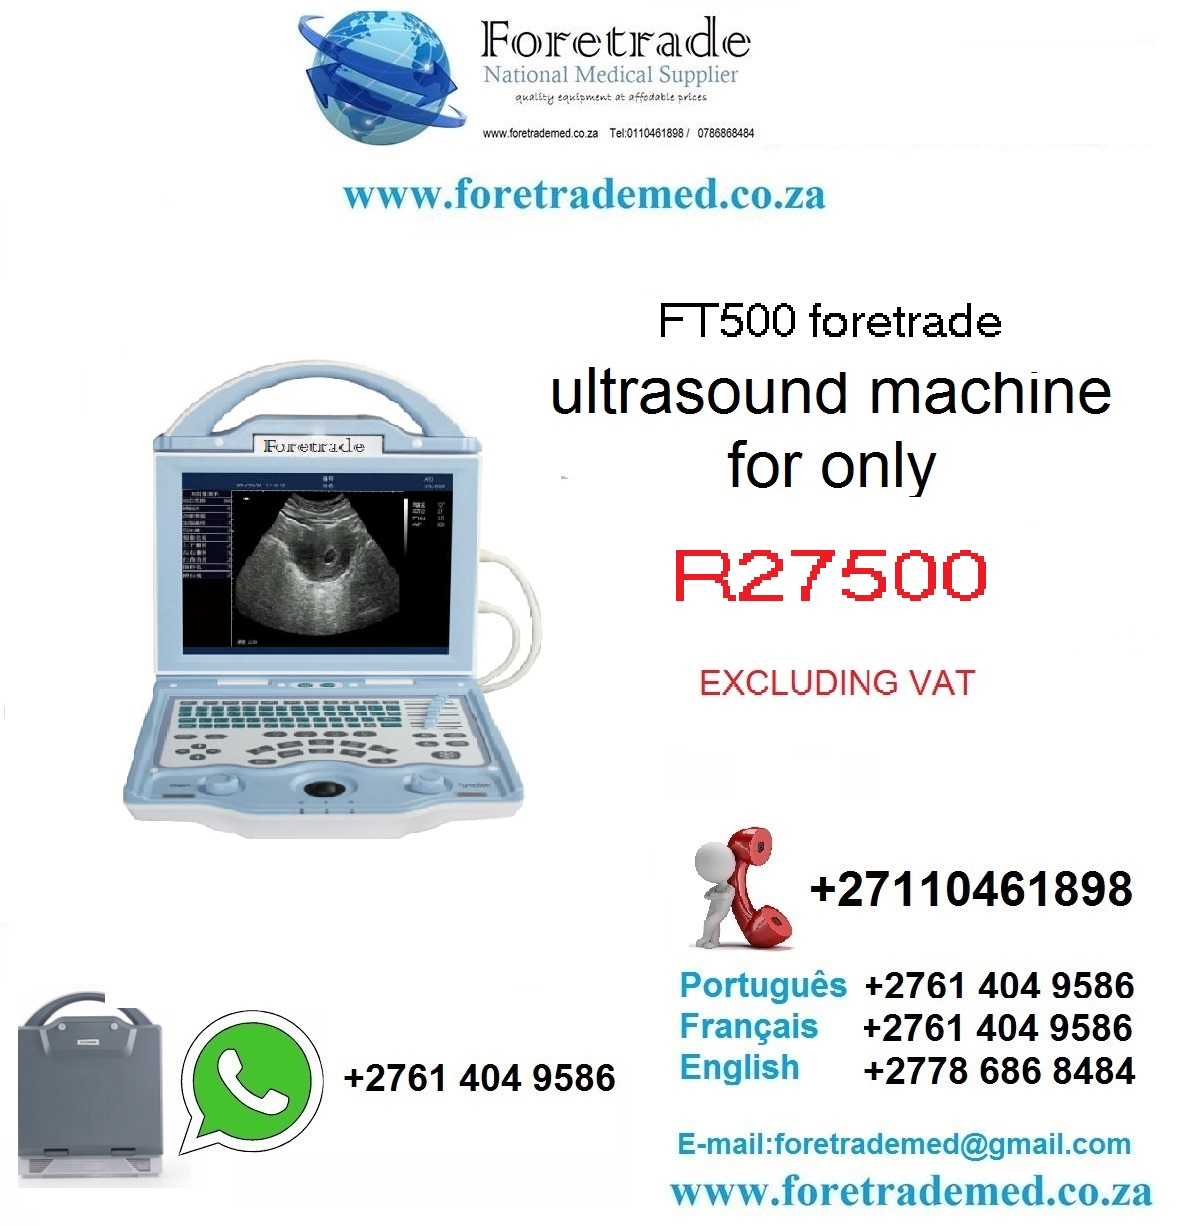 FT500 VETERINARY ULTRASOUND MACHINE only for R28900 contact patrick on 0110461898